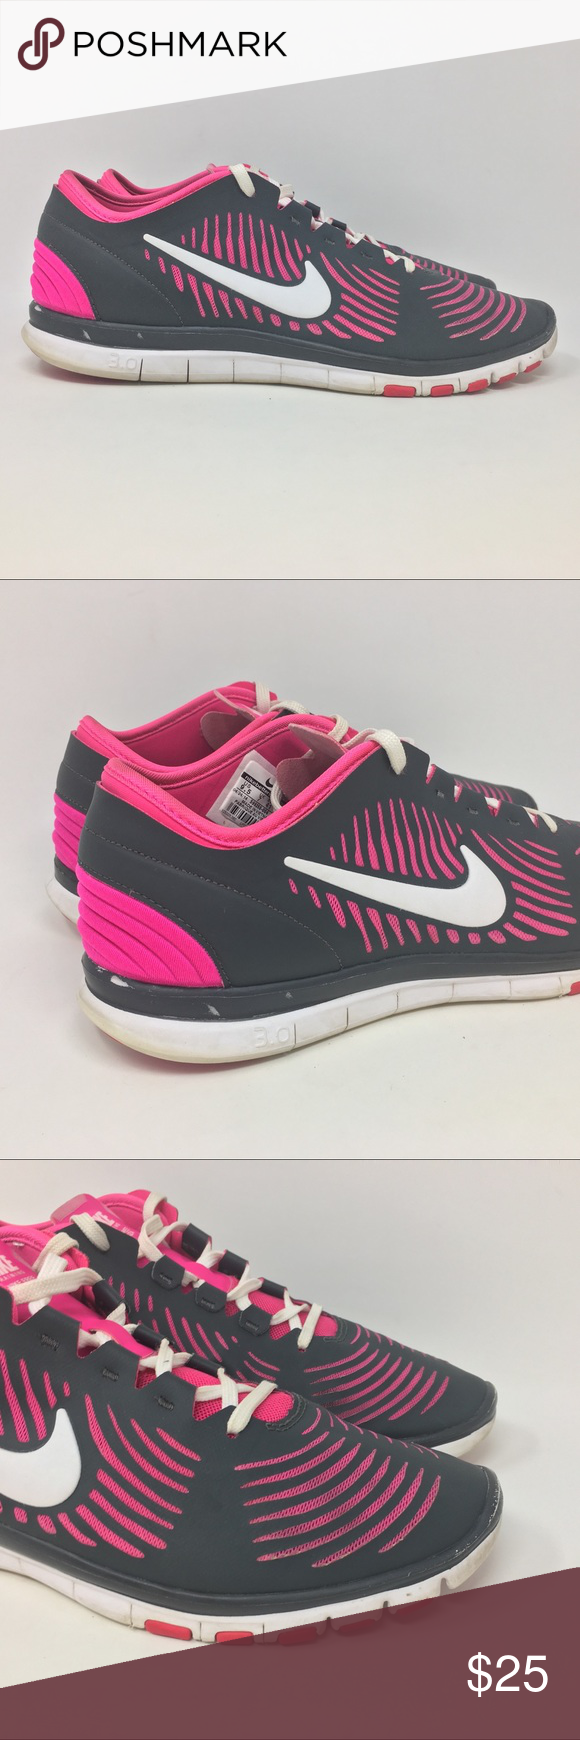 best cheap 2a78a ae07b Nike Free Balanza Womens 9.5 Running Shoes D23 Nike Free Balanza Womens  Size 9.5 Training Running Shoes Grey White Pink D23 Shoes are in good used  condition ...